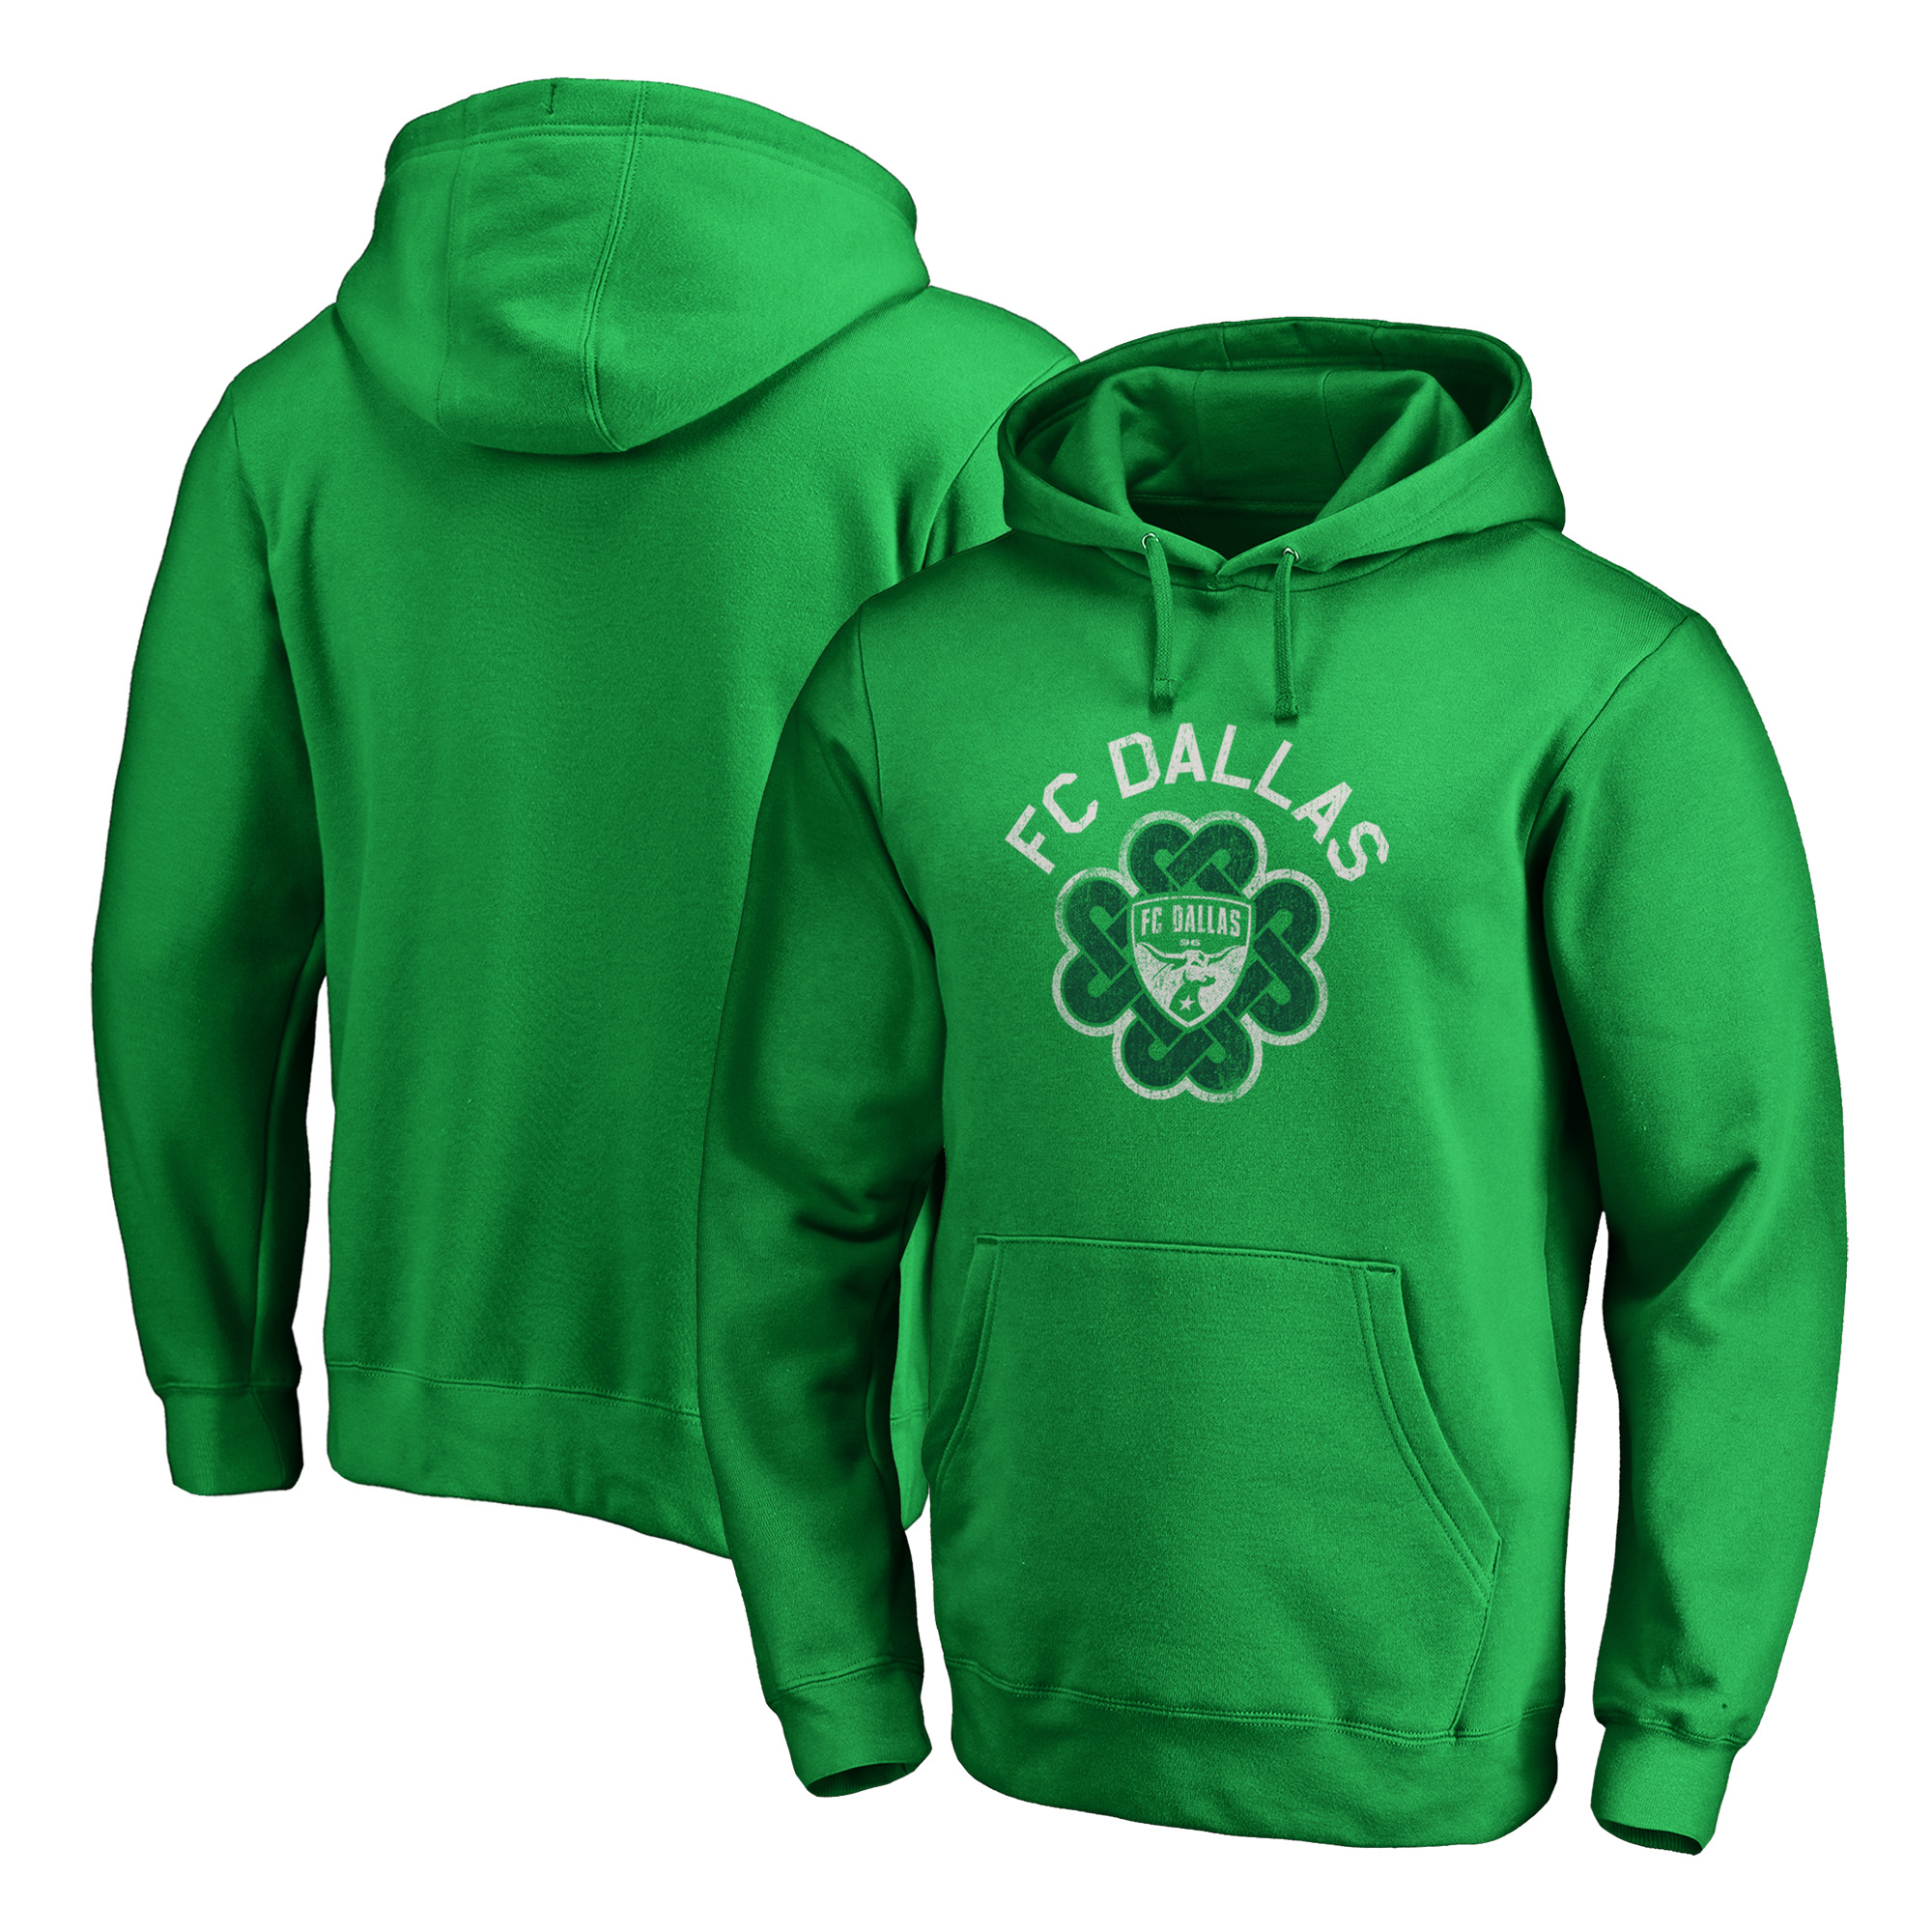 FC Dallas Fanatics Branded St. Patrick's Day Luck Tradition Pullover Hoodie - Kelly Green